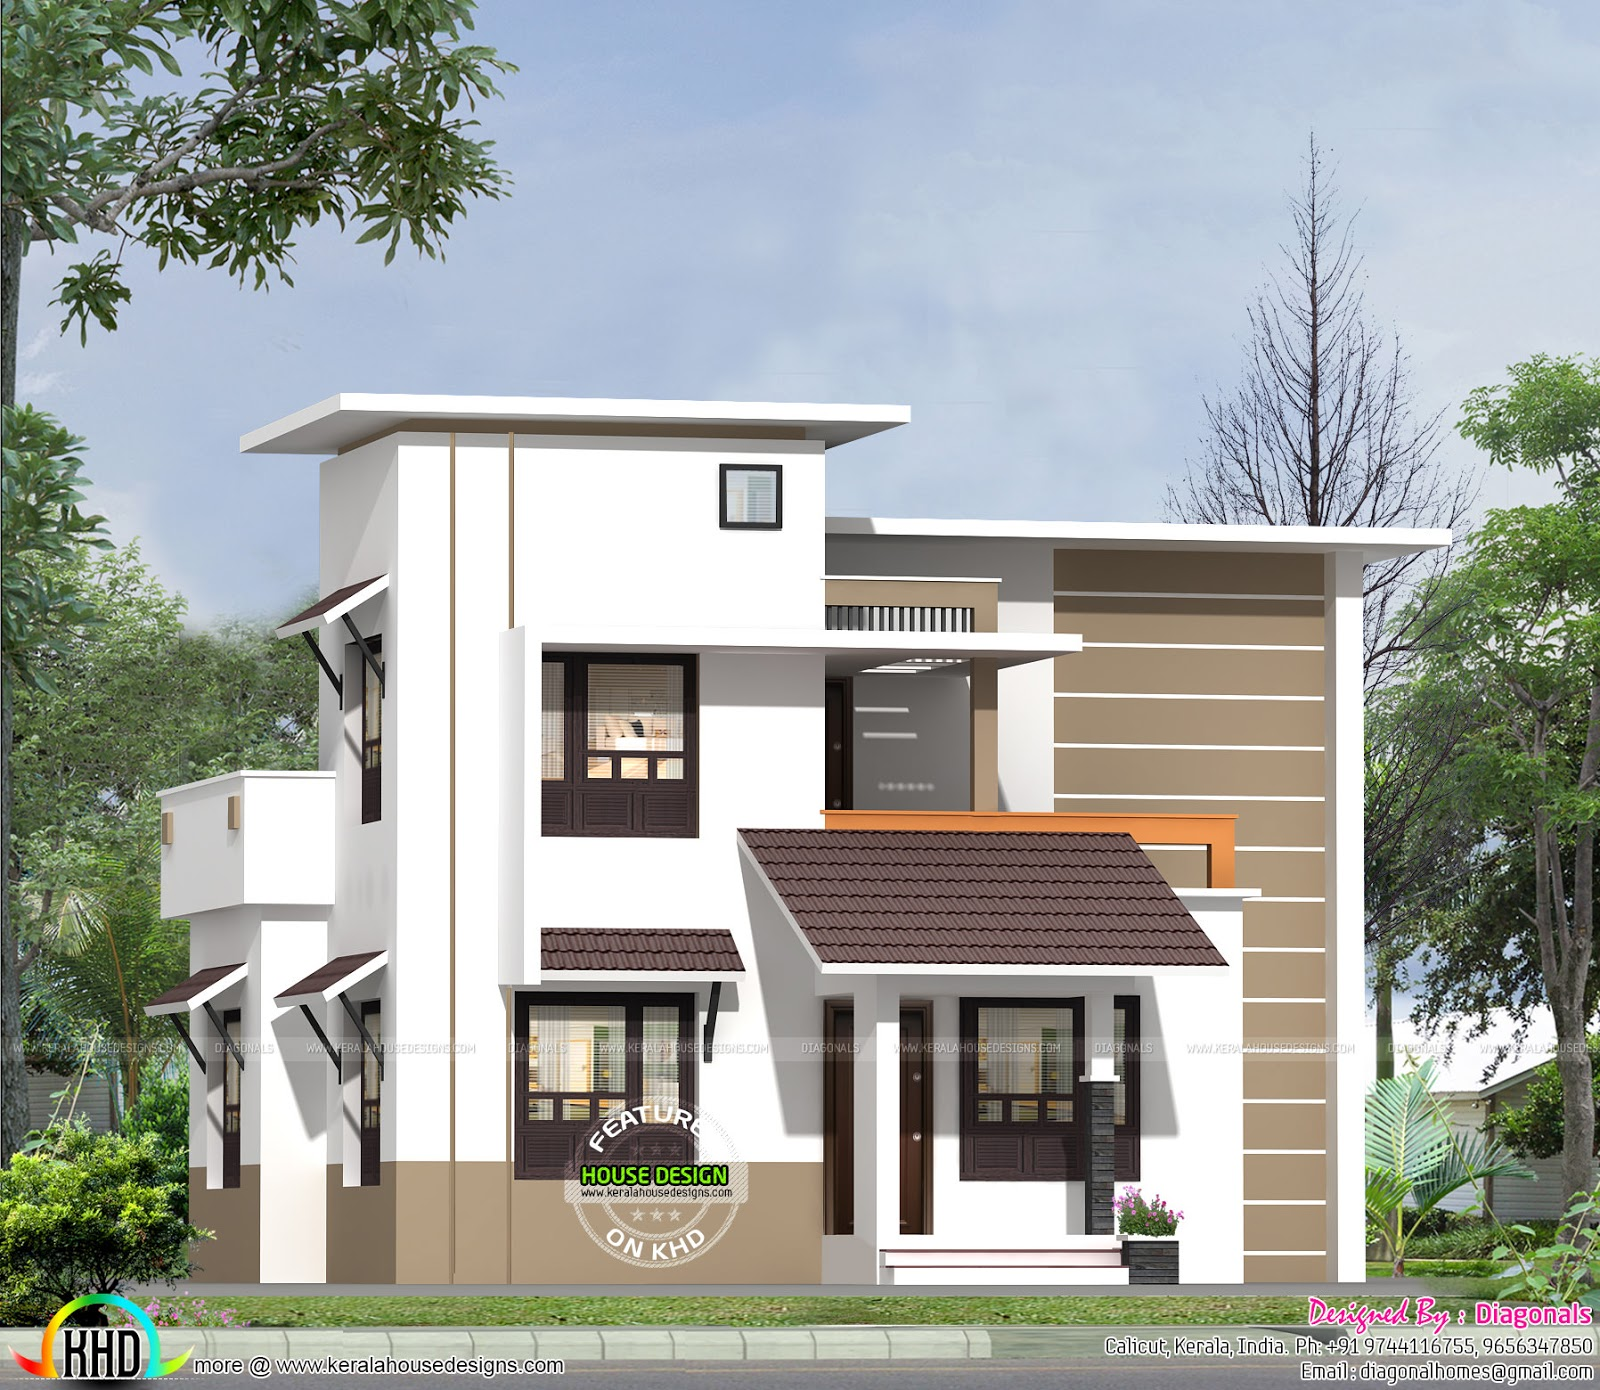 Affordable low cost home kerala home design and floor plans for In ground home designs